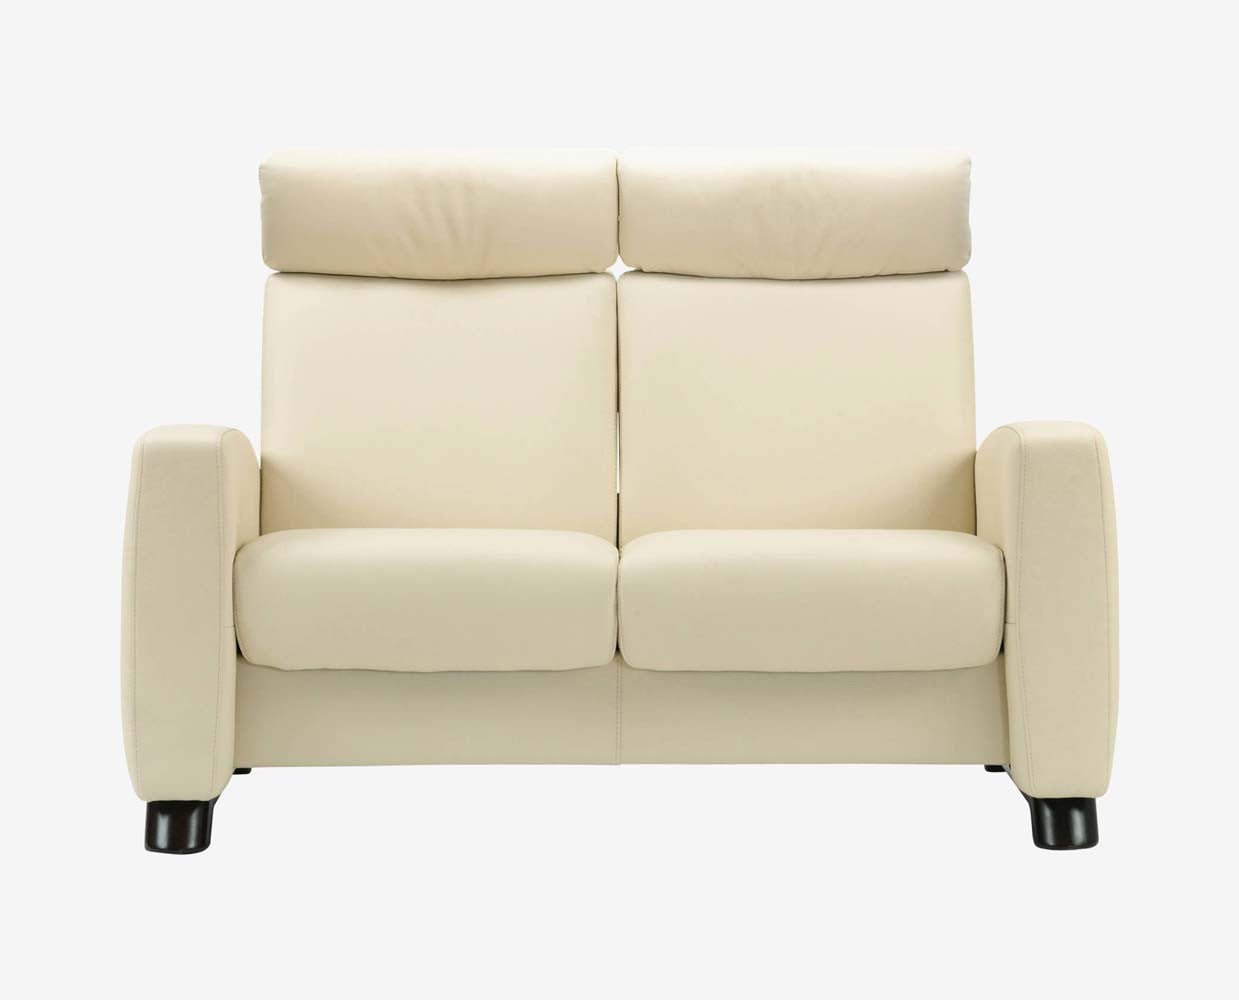 high loveseat mocha htm sofa ref seater buy velvet back